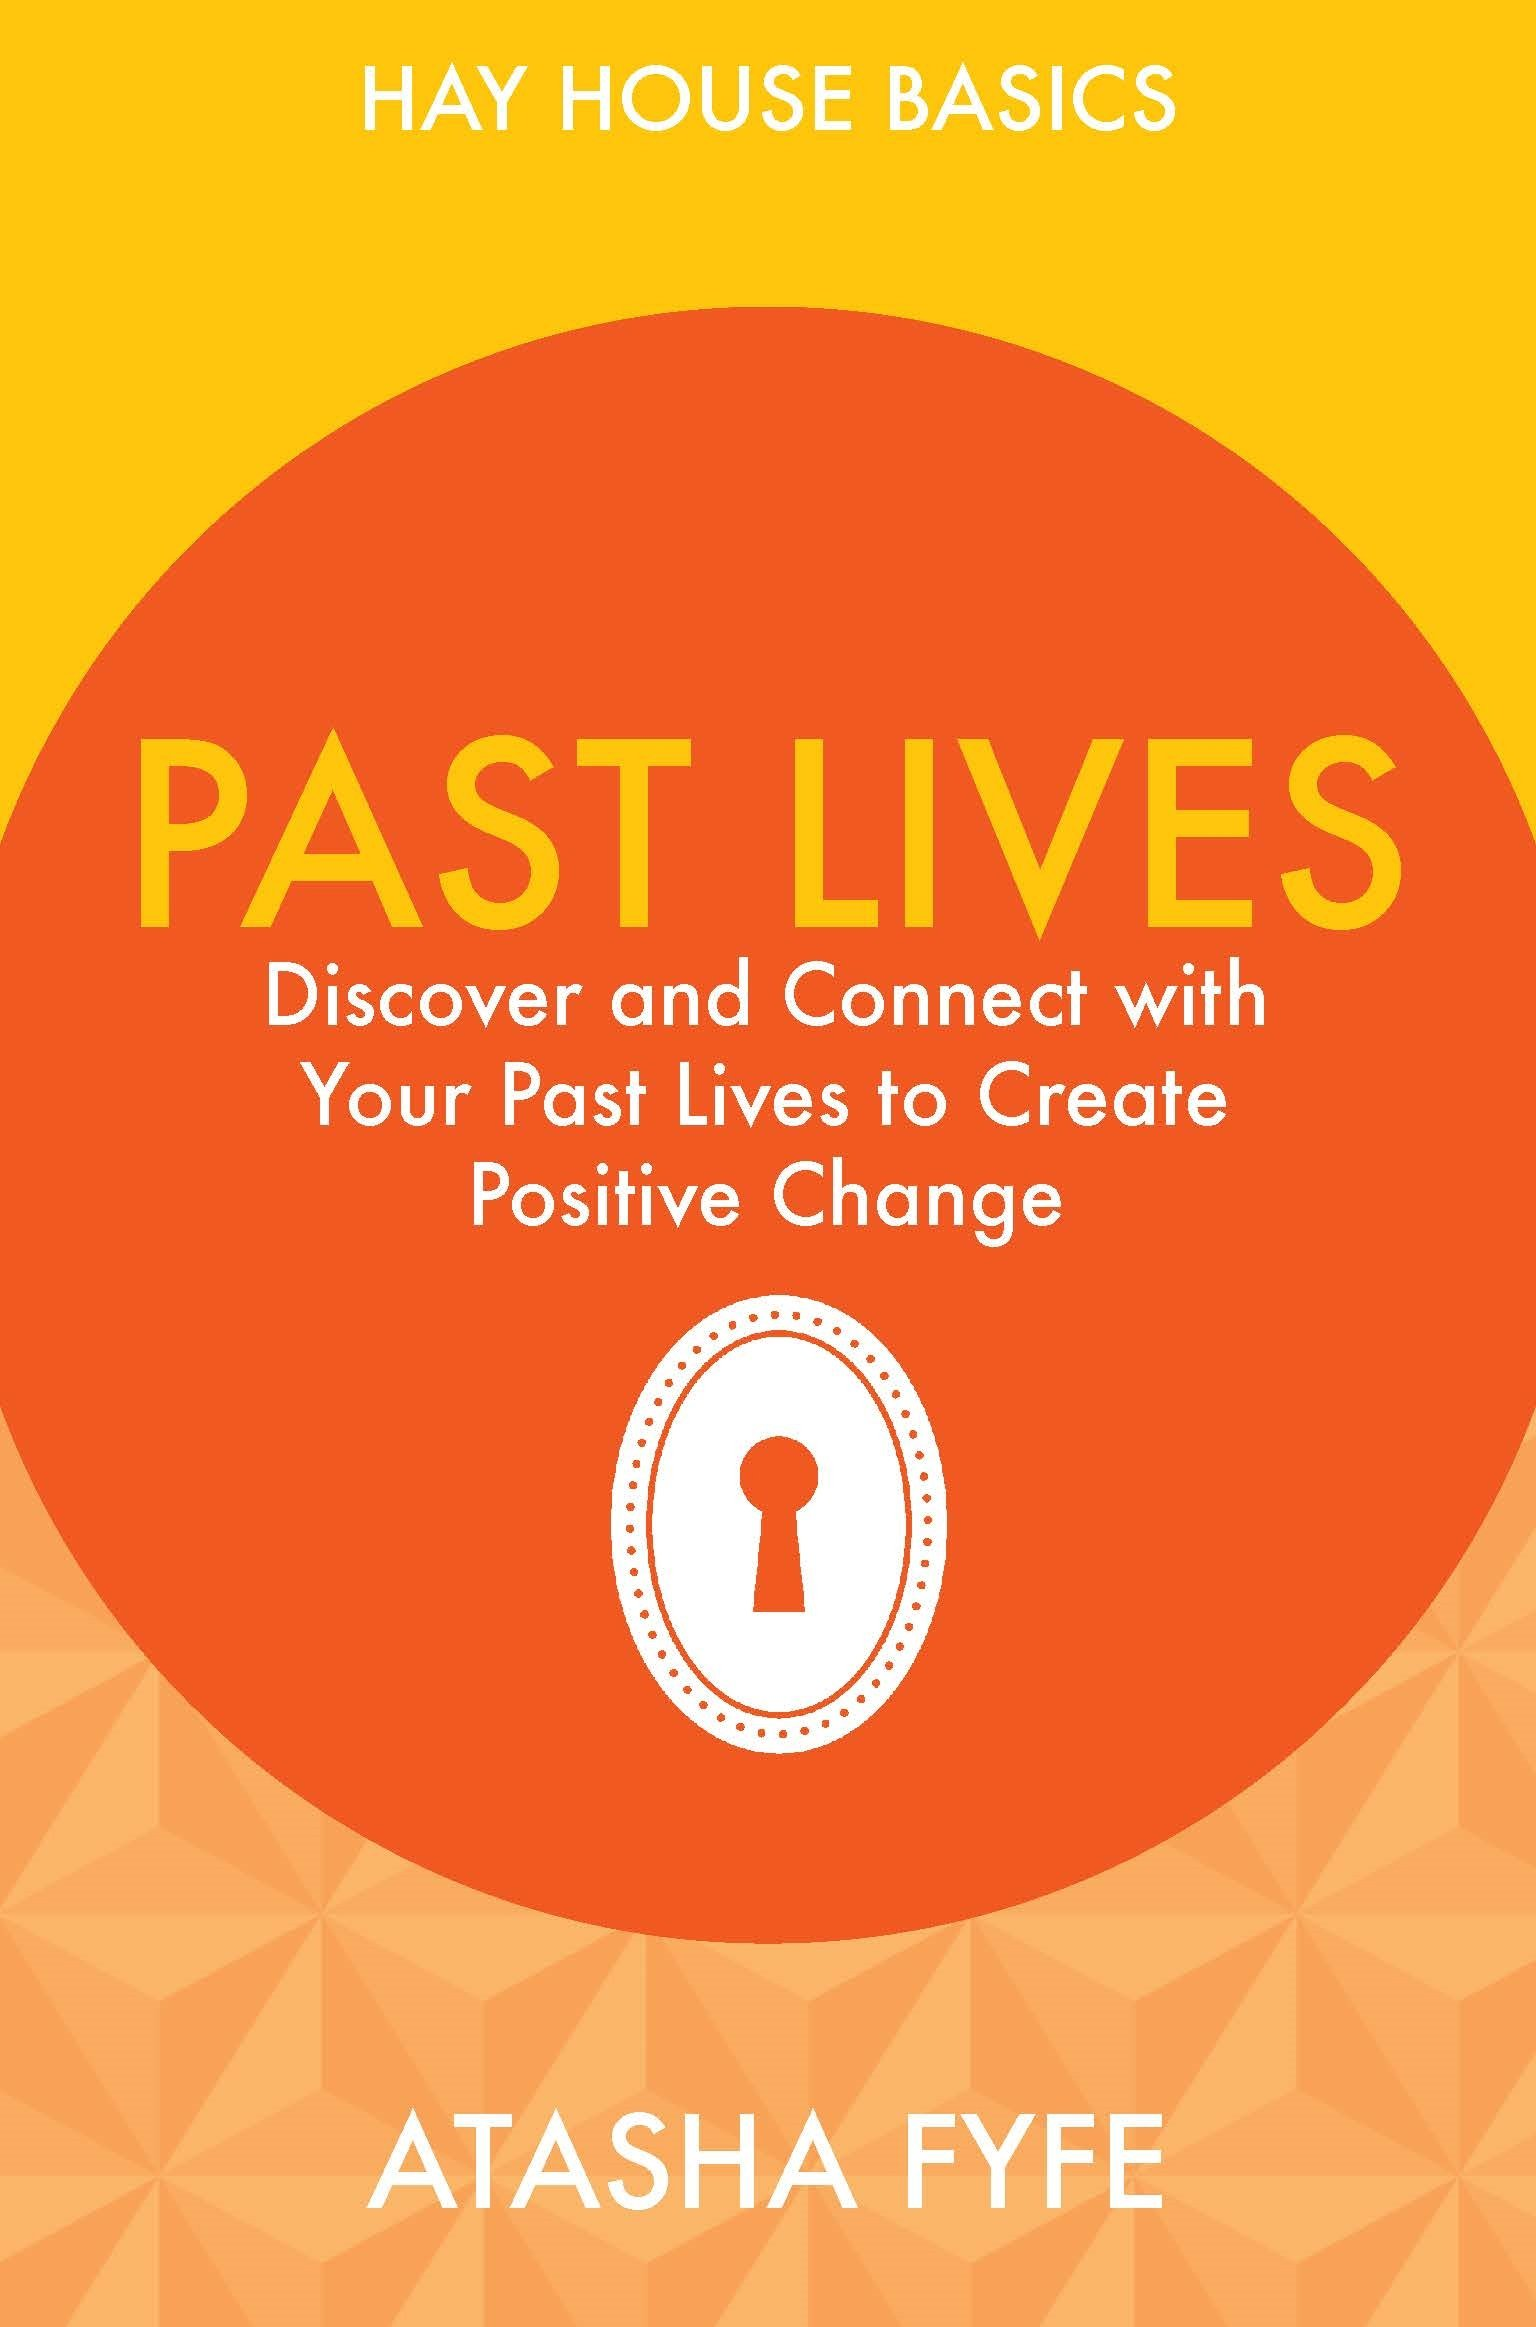 Past Lives: Discover and Connect with Your Past Lives to Create Positive Change (Hay House Basics) ebook